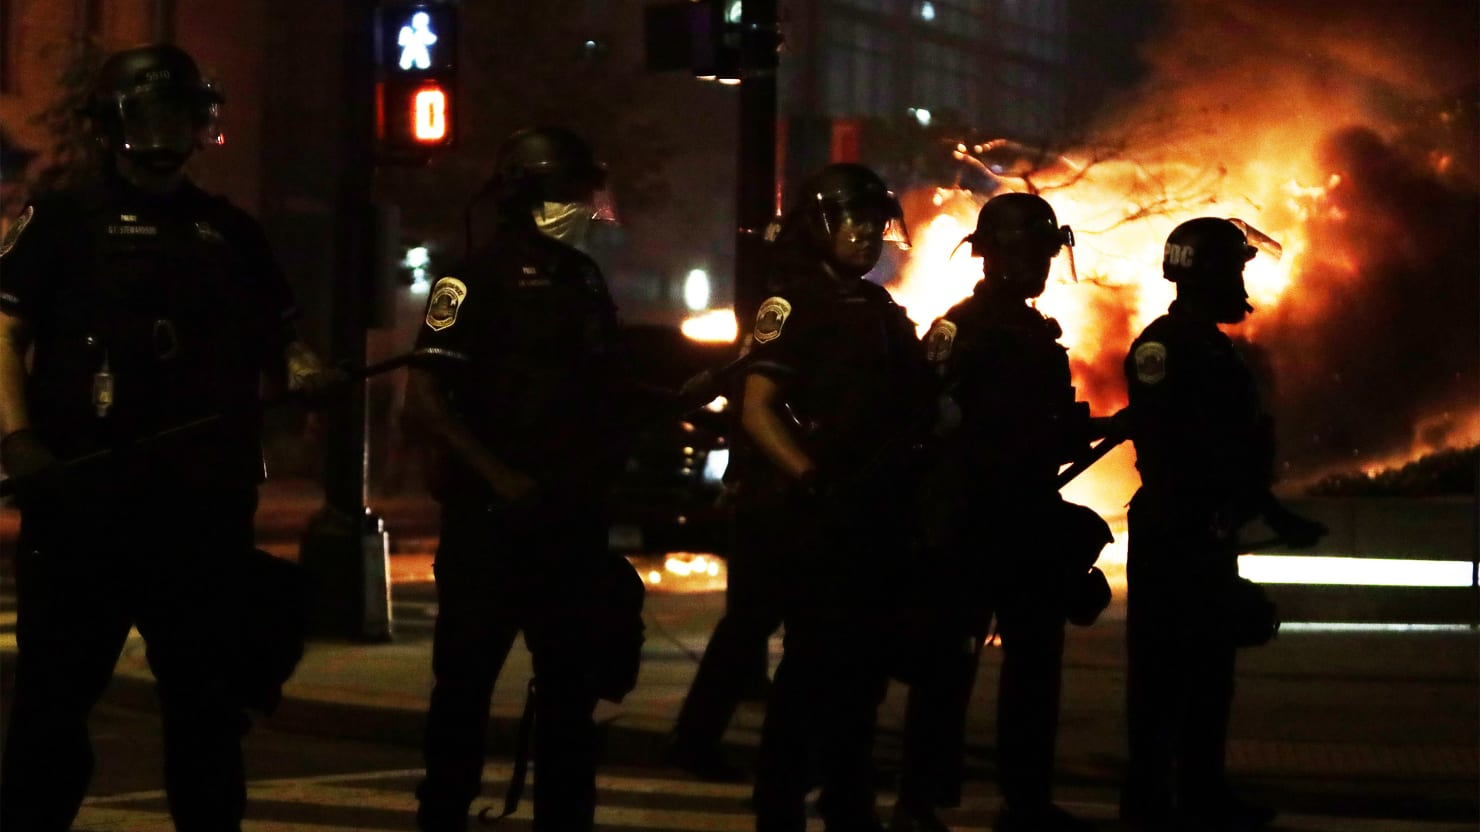 Protest Near White House Explodes With Fury and Flames as Cops Enforce Curfew